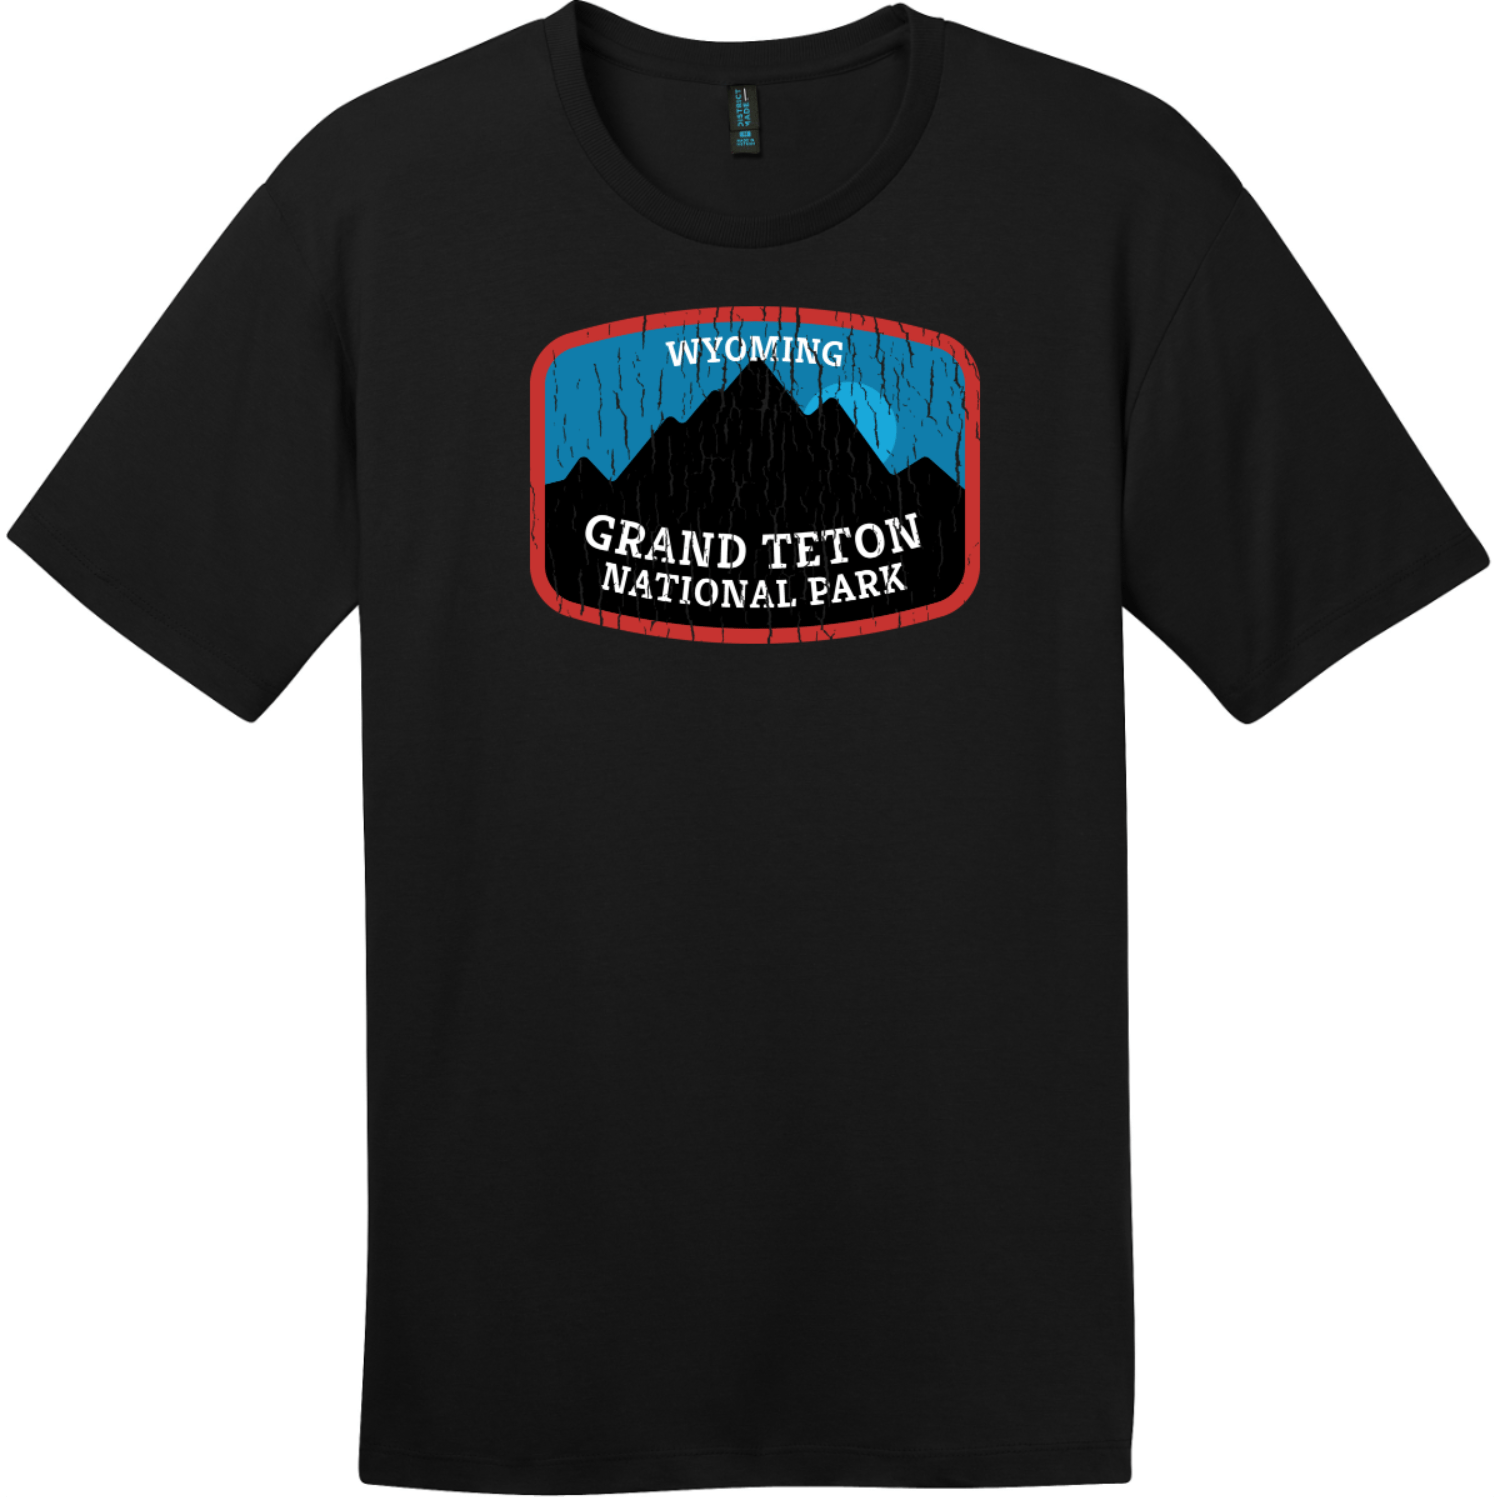 Grand Teton National Park Wyoming T-Shirt Jet Black District Perfect Weight Tee DT104